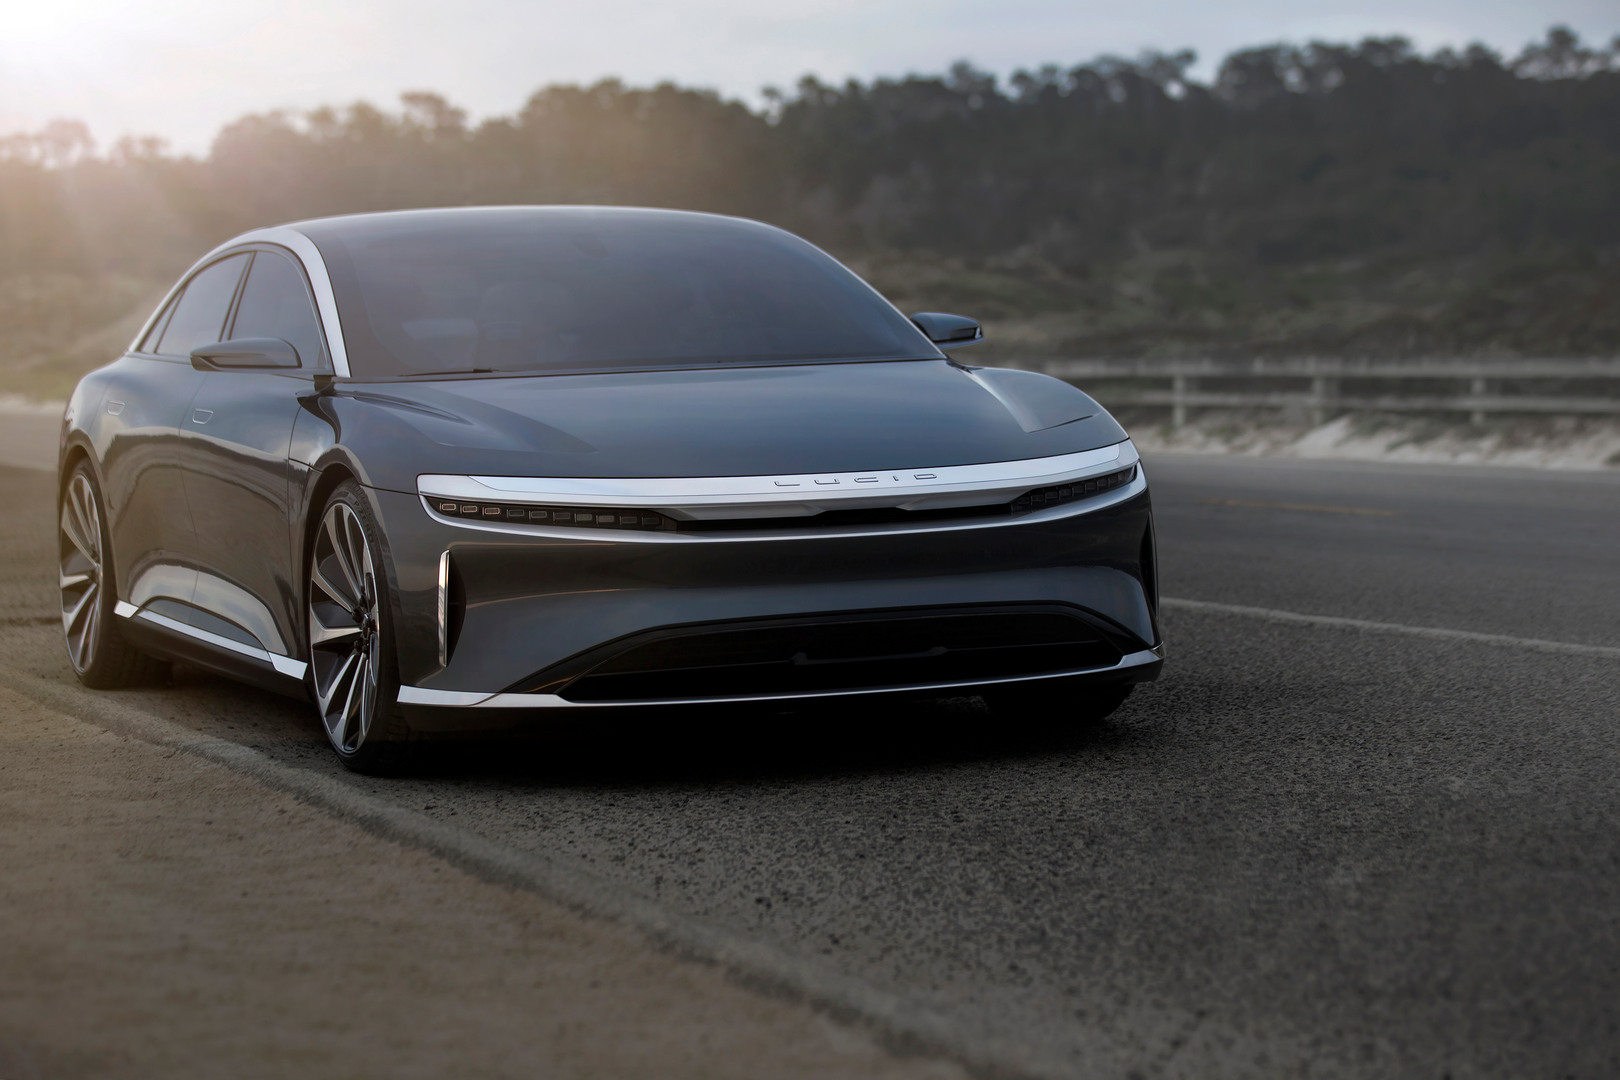 The California-based car company will be bringing its sedan-shaped Air EV to the market next year and is already taking requests for pre-orders.